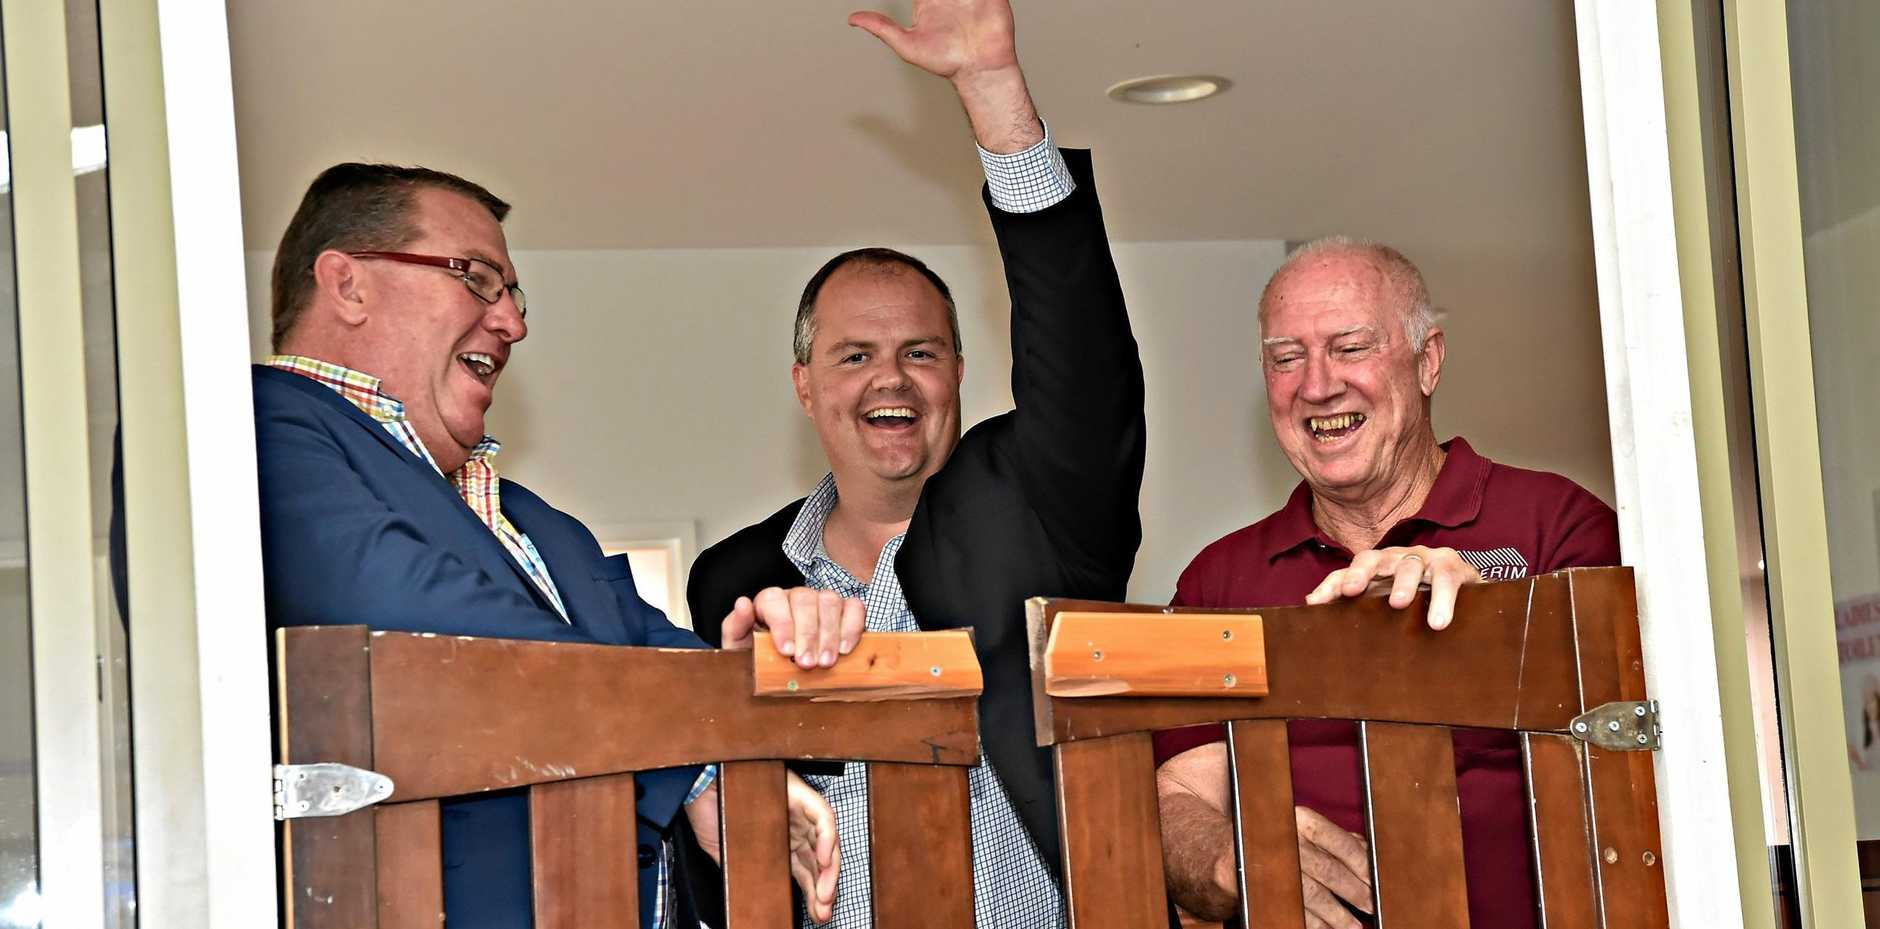 OPEN FOR BUSINESS: Assistant Minister for Roads and Transport Scott Buchholz, Member for Fairfax Ted O'Brien and Buderim Men's Shed President Barry Cheales officially open Buderim Men's Shed.